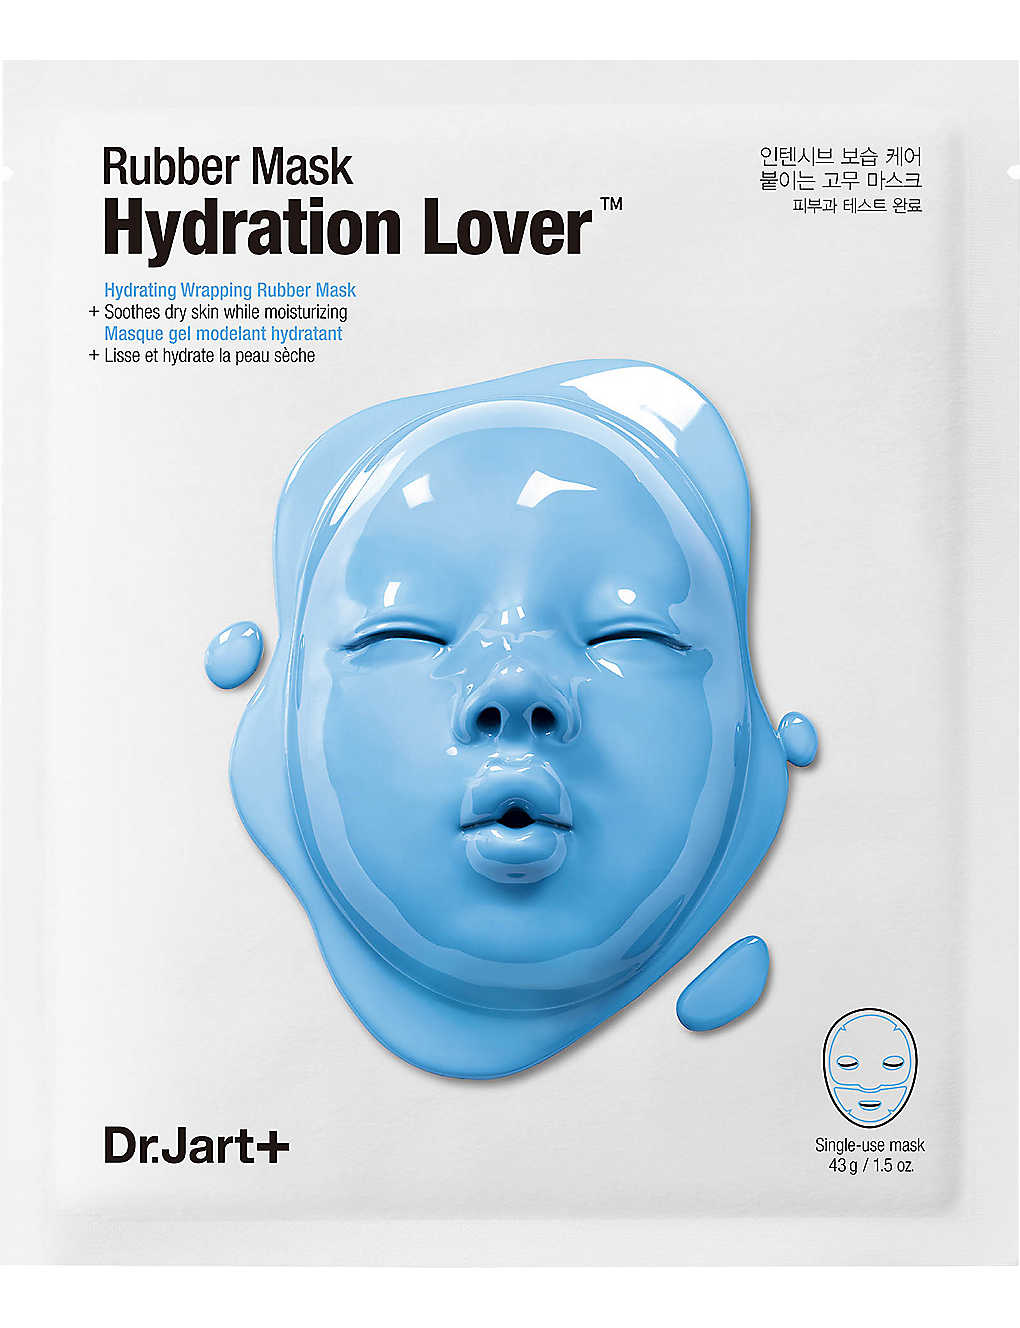 DR JART+: Rubber Mask Hydration Lover